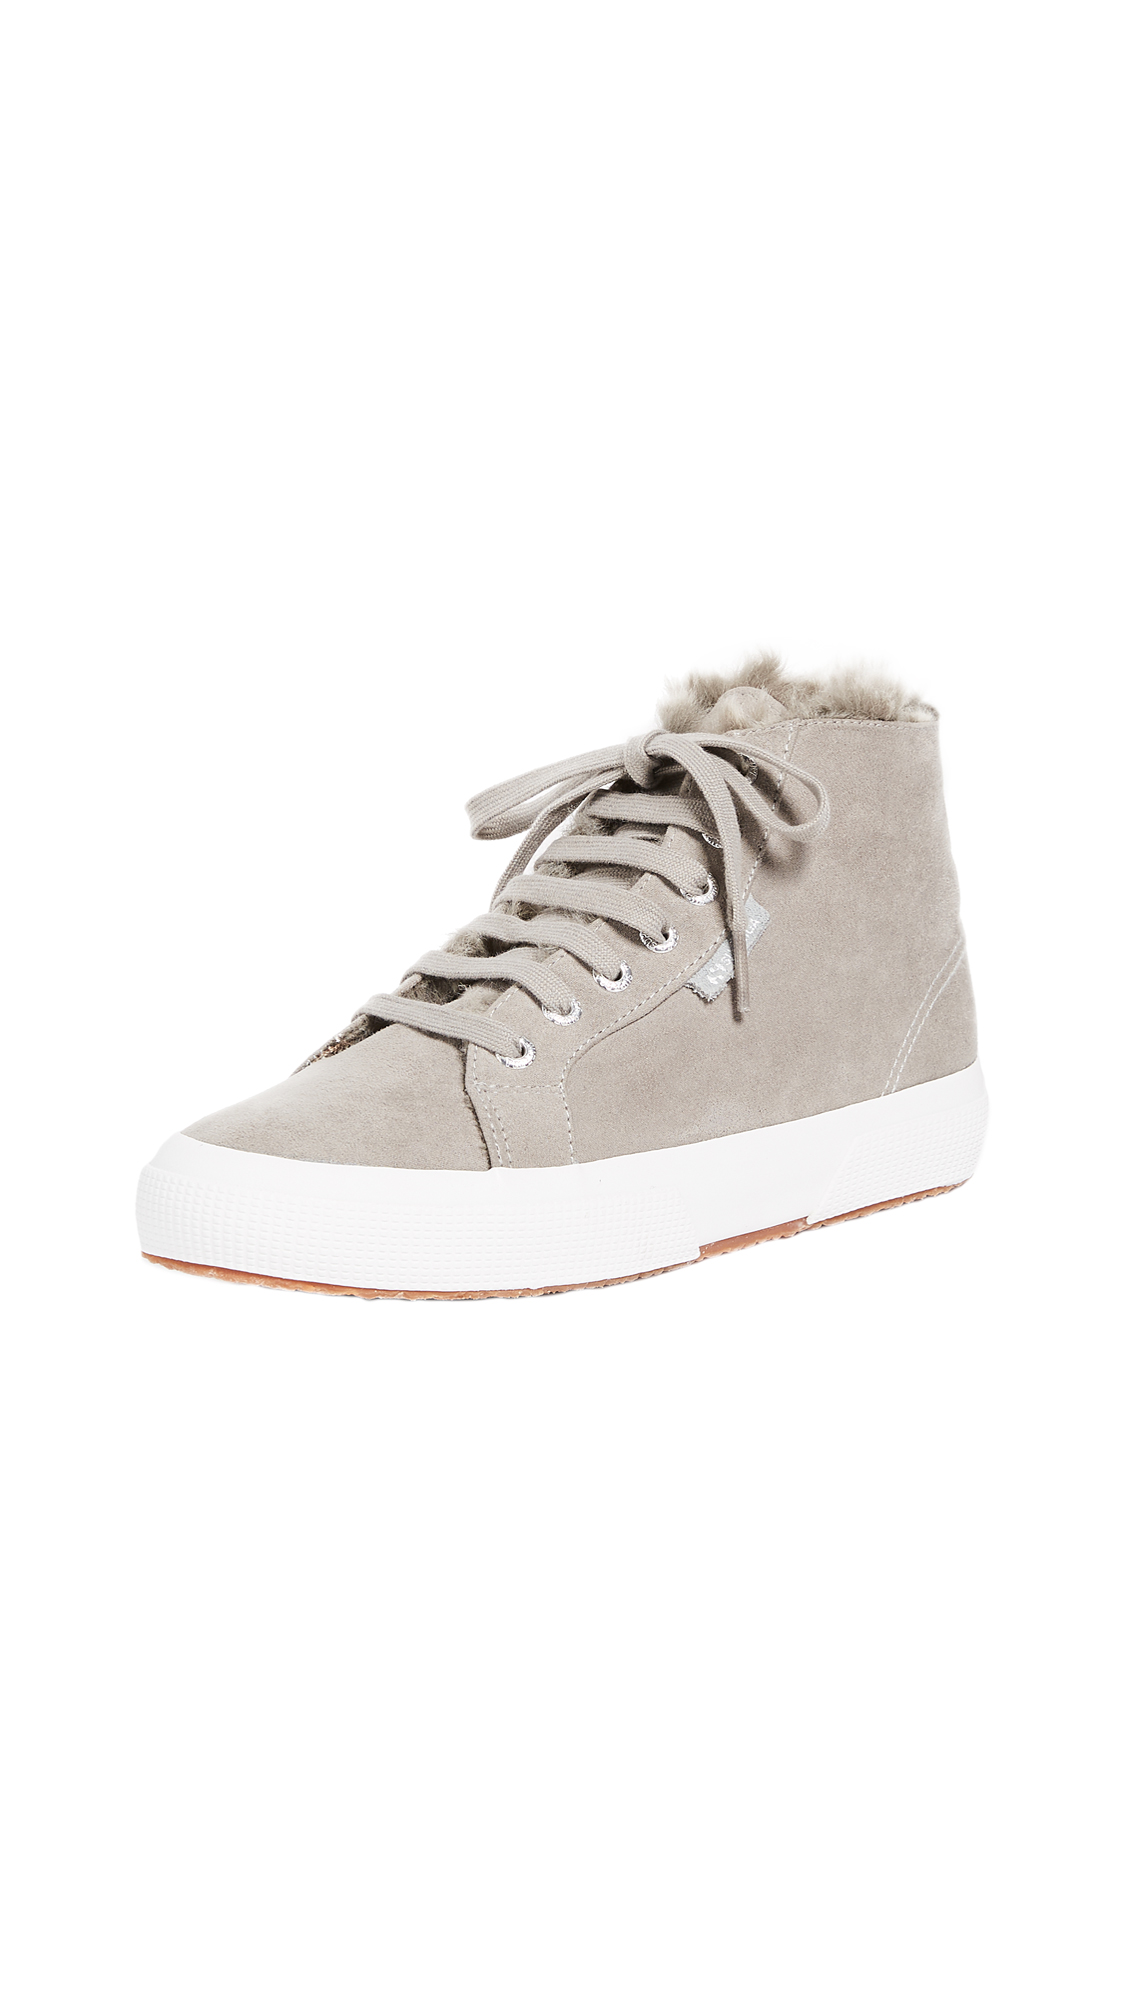 Superga 2795 Sherpa Lined High Top Sneakers - Grey